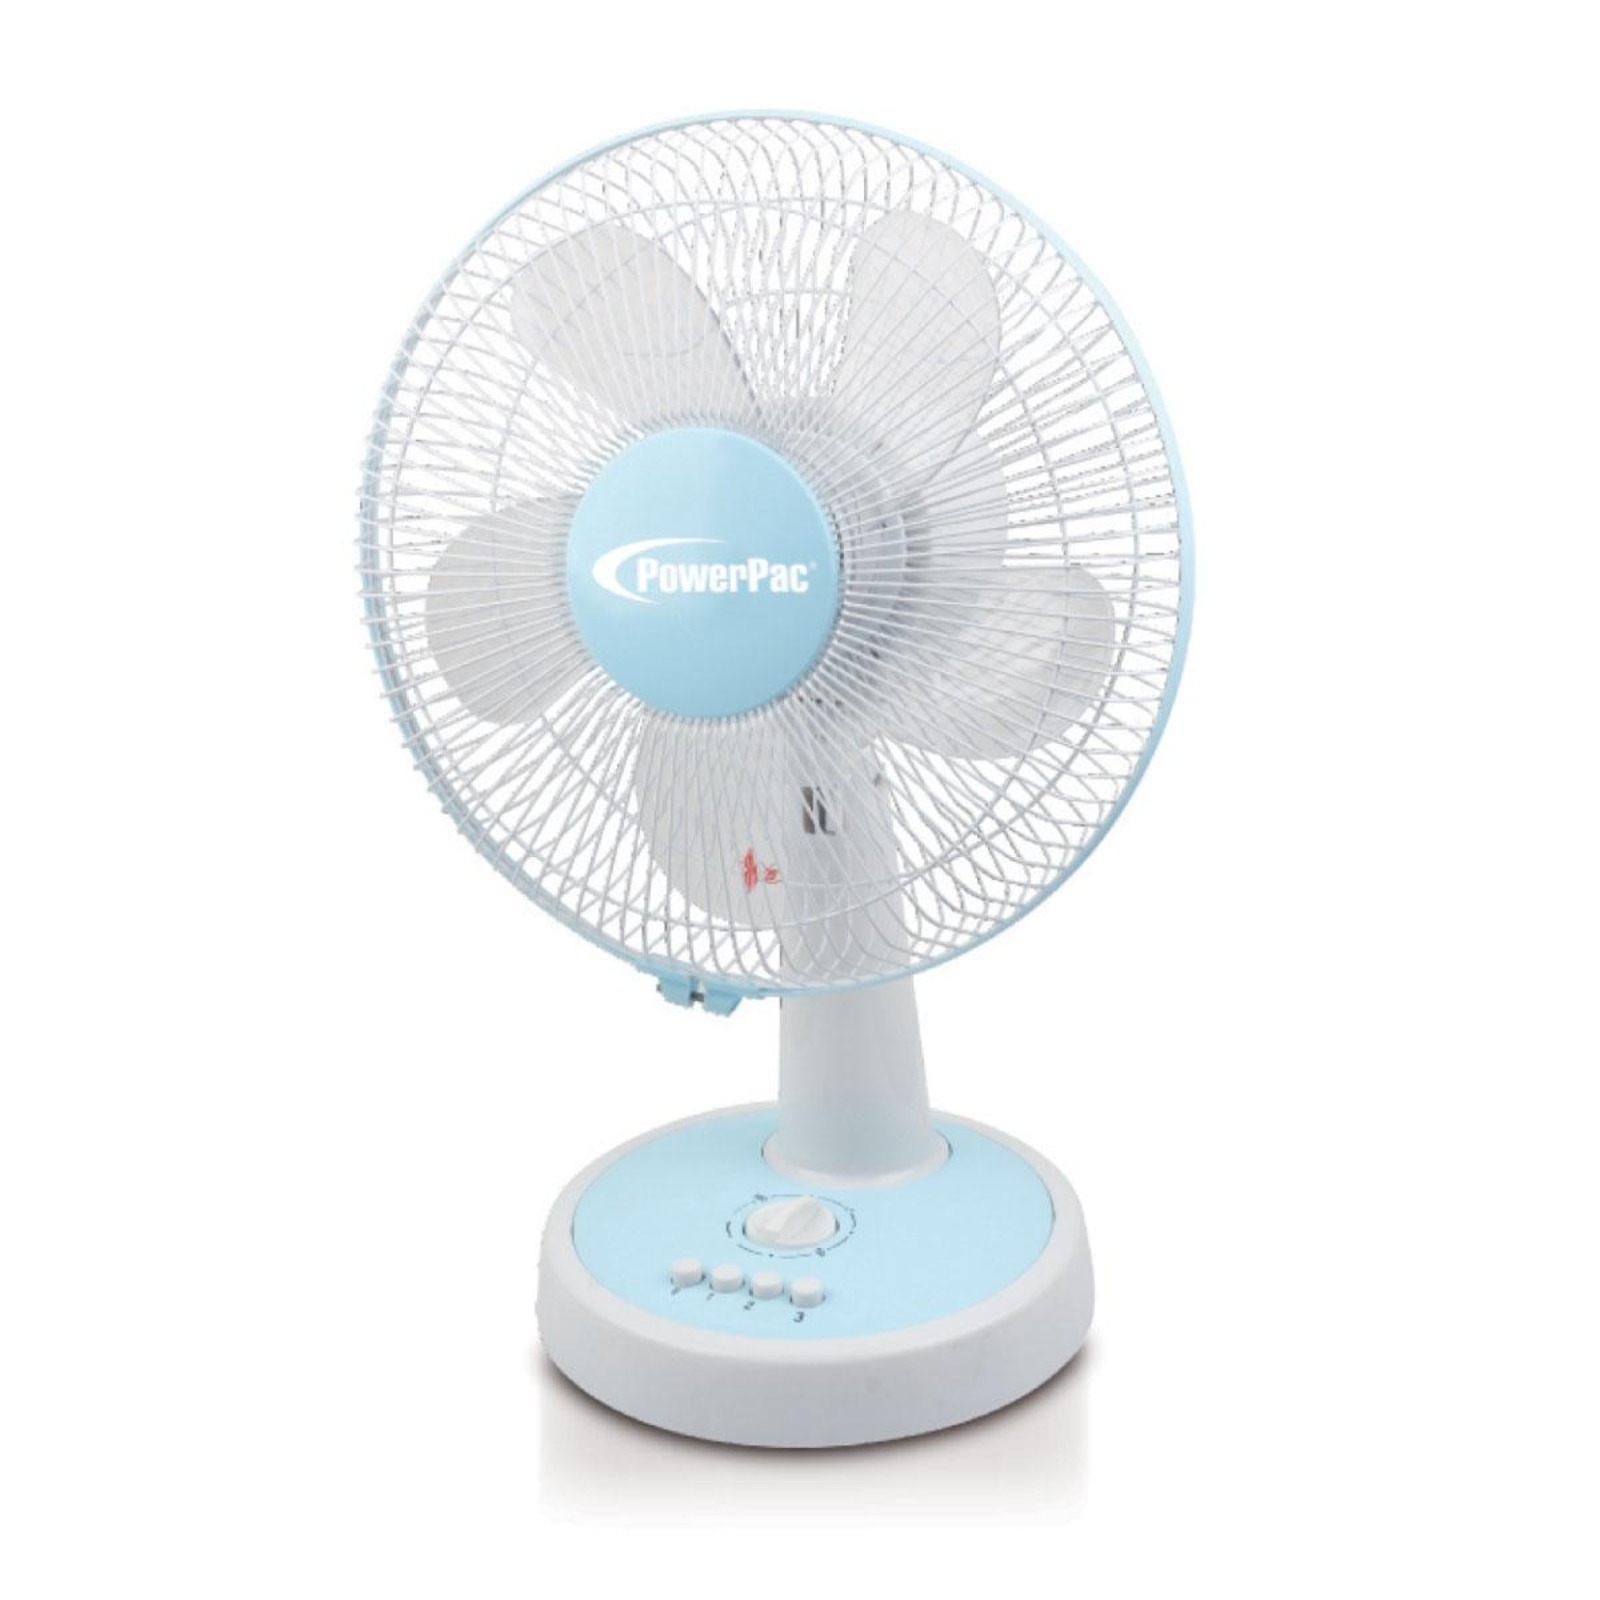 PowerPac 12 Inch Desk Fan With Oscillation And Timer - PPTF303